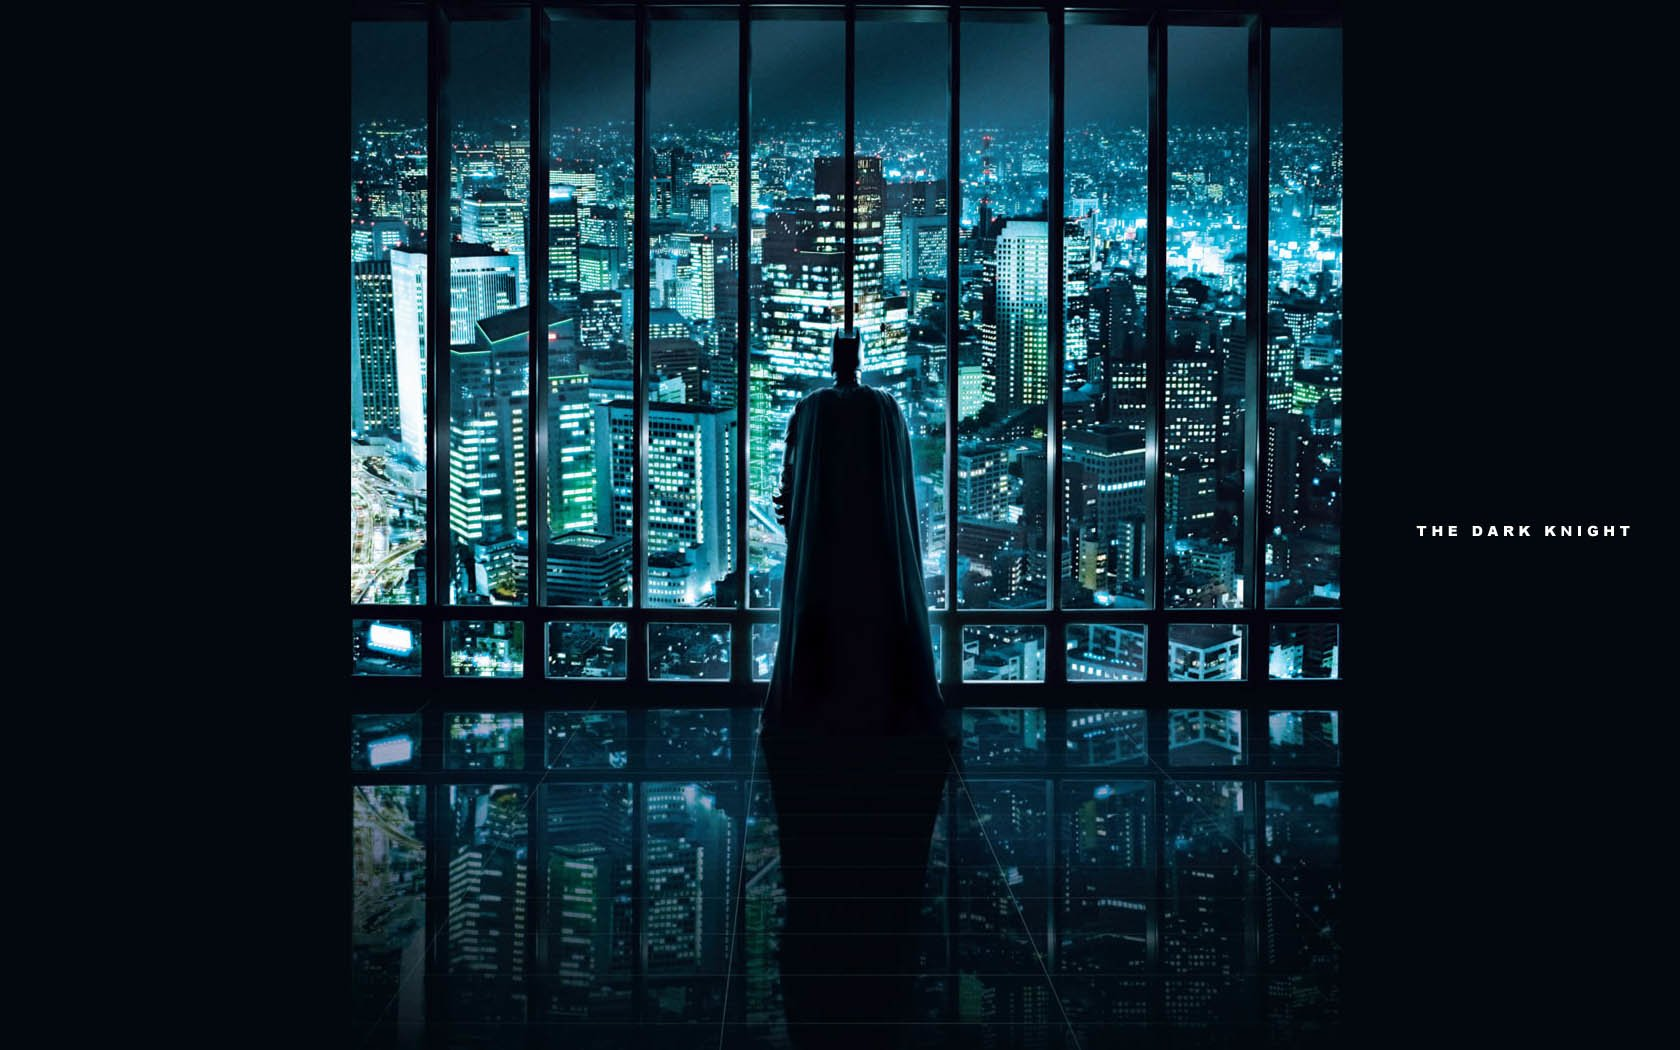 432 The Dark Knight Hd Wallpapers Background Images Wallpaper